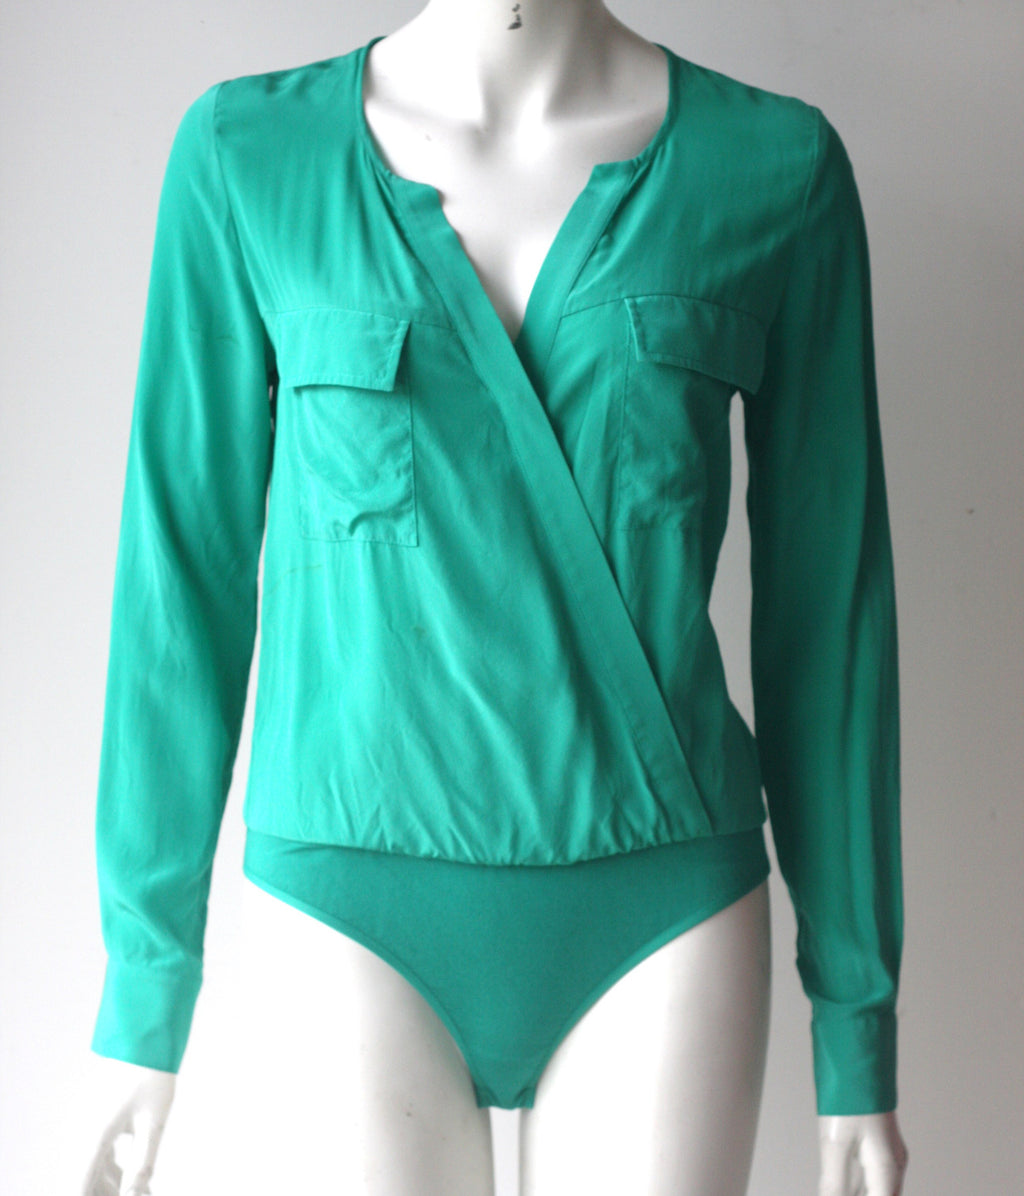 Guess By Marciano Green Silk Long Sleeve Body Suit - Joyce's Closet  - 1